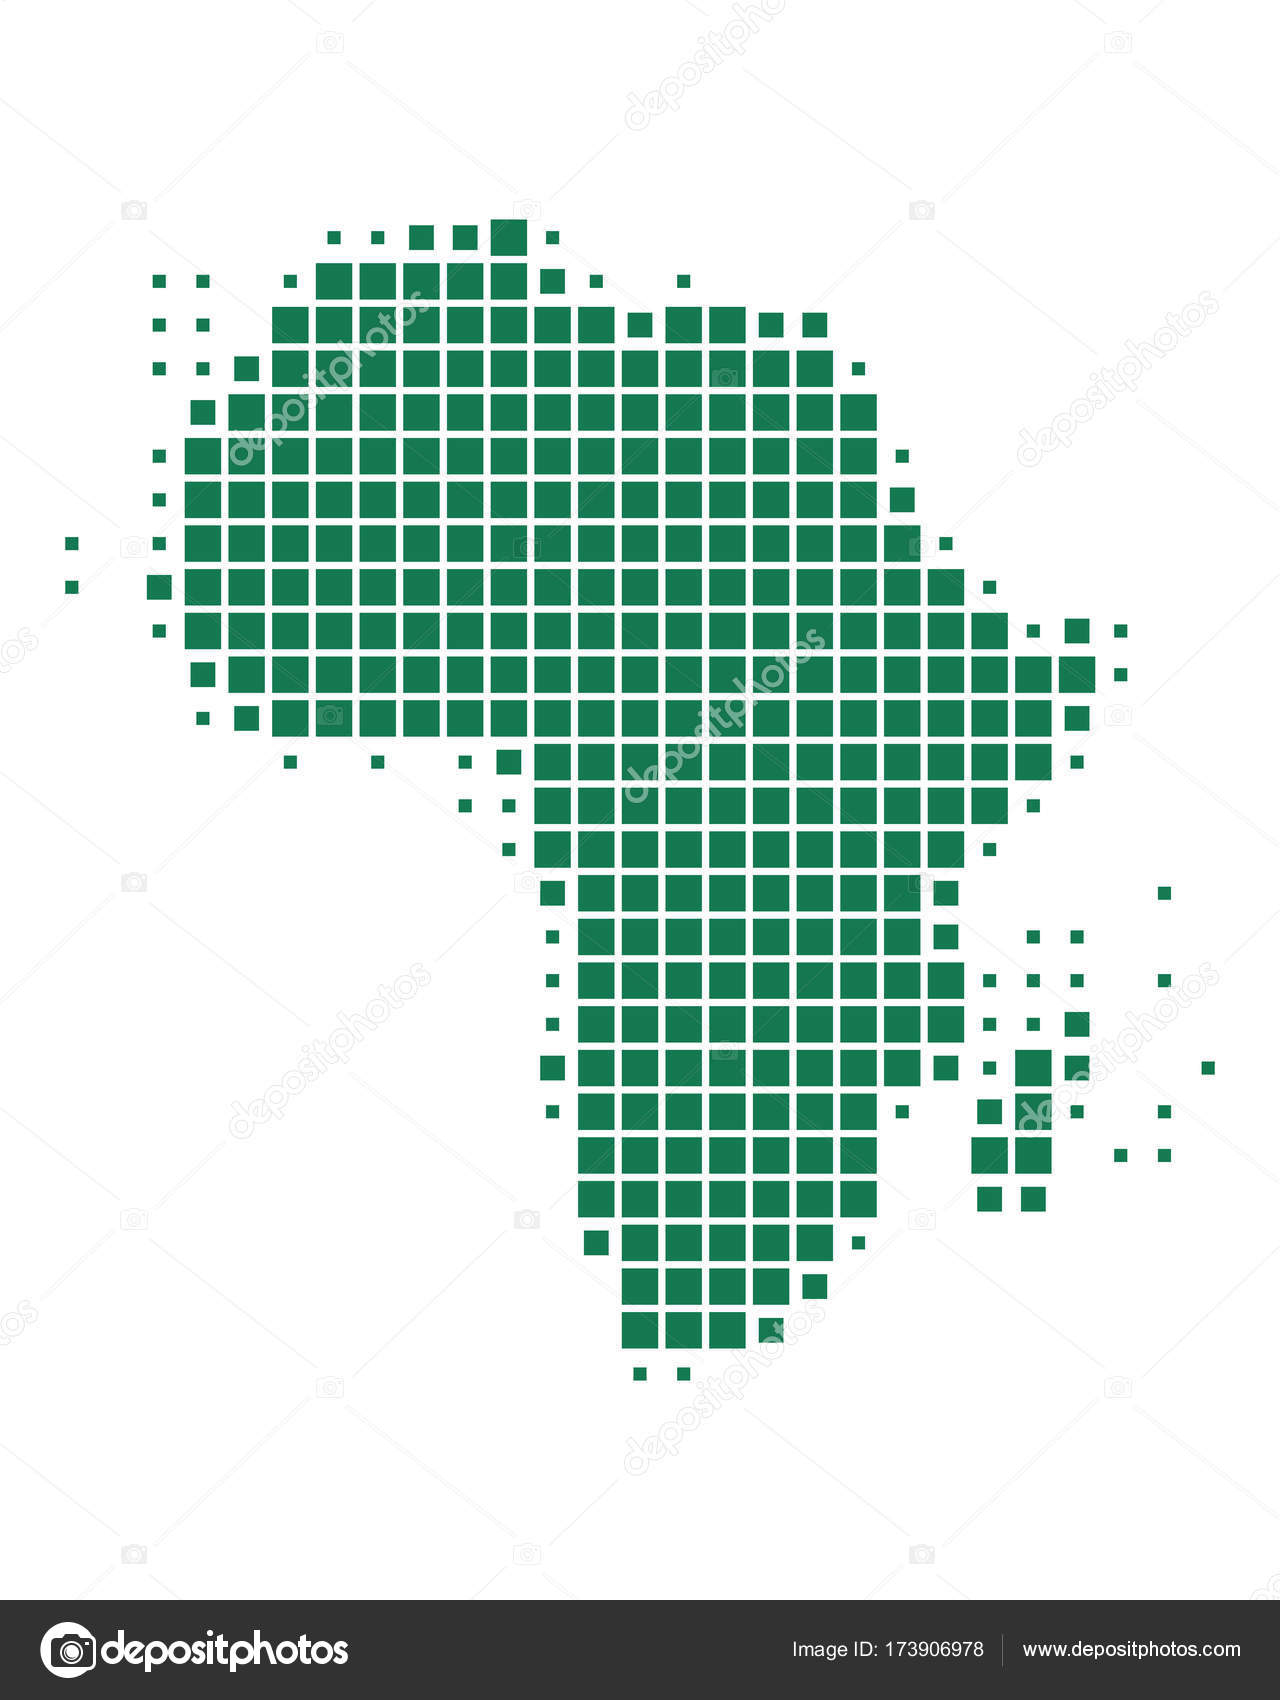 Accurate Map Of Africa.Accurate Map Of Africa Stock Vector C Rbiedermann 173906978